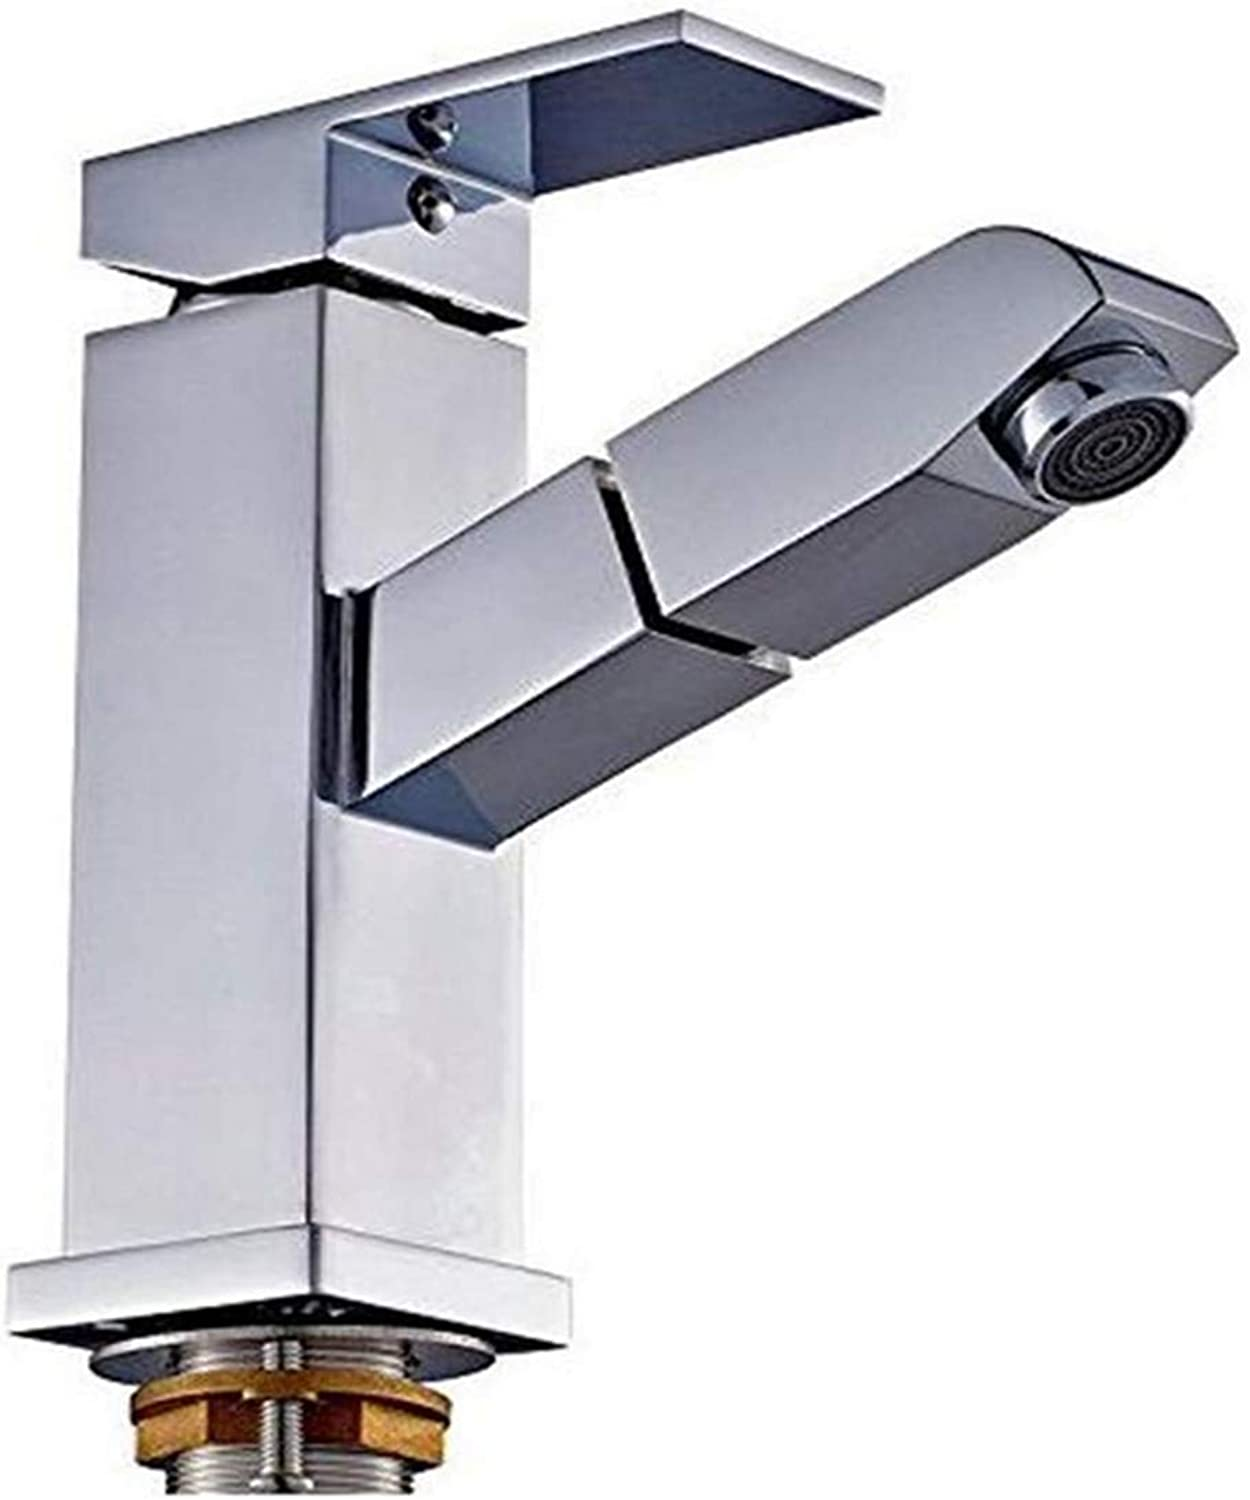 Miscelatore Cucina Antique Solid Brass Basin Mixer Tap Kitchen Sink Mixer Tap Hot and Cold Water Pull-Out Spout Head Sink Faucet